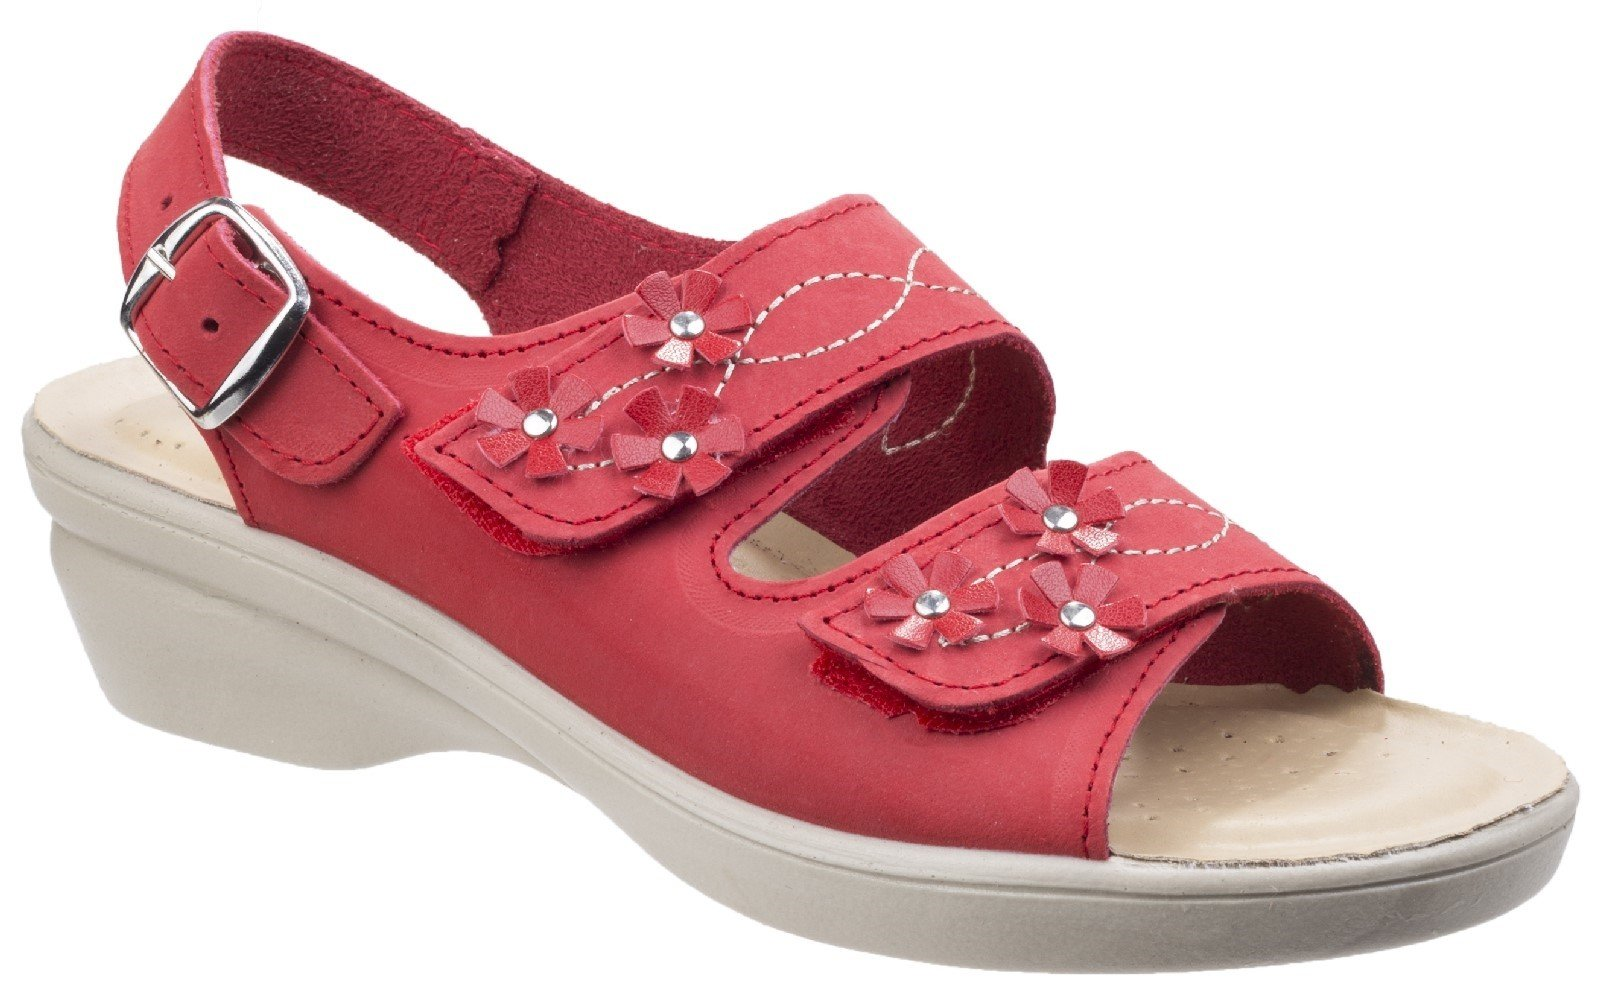 Fleet & Foster Women's Amaretto Touch Fastening Sandal Various Colours 26298 - Red 3